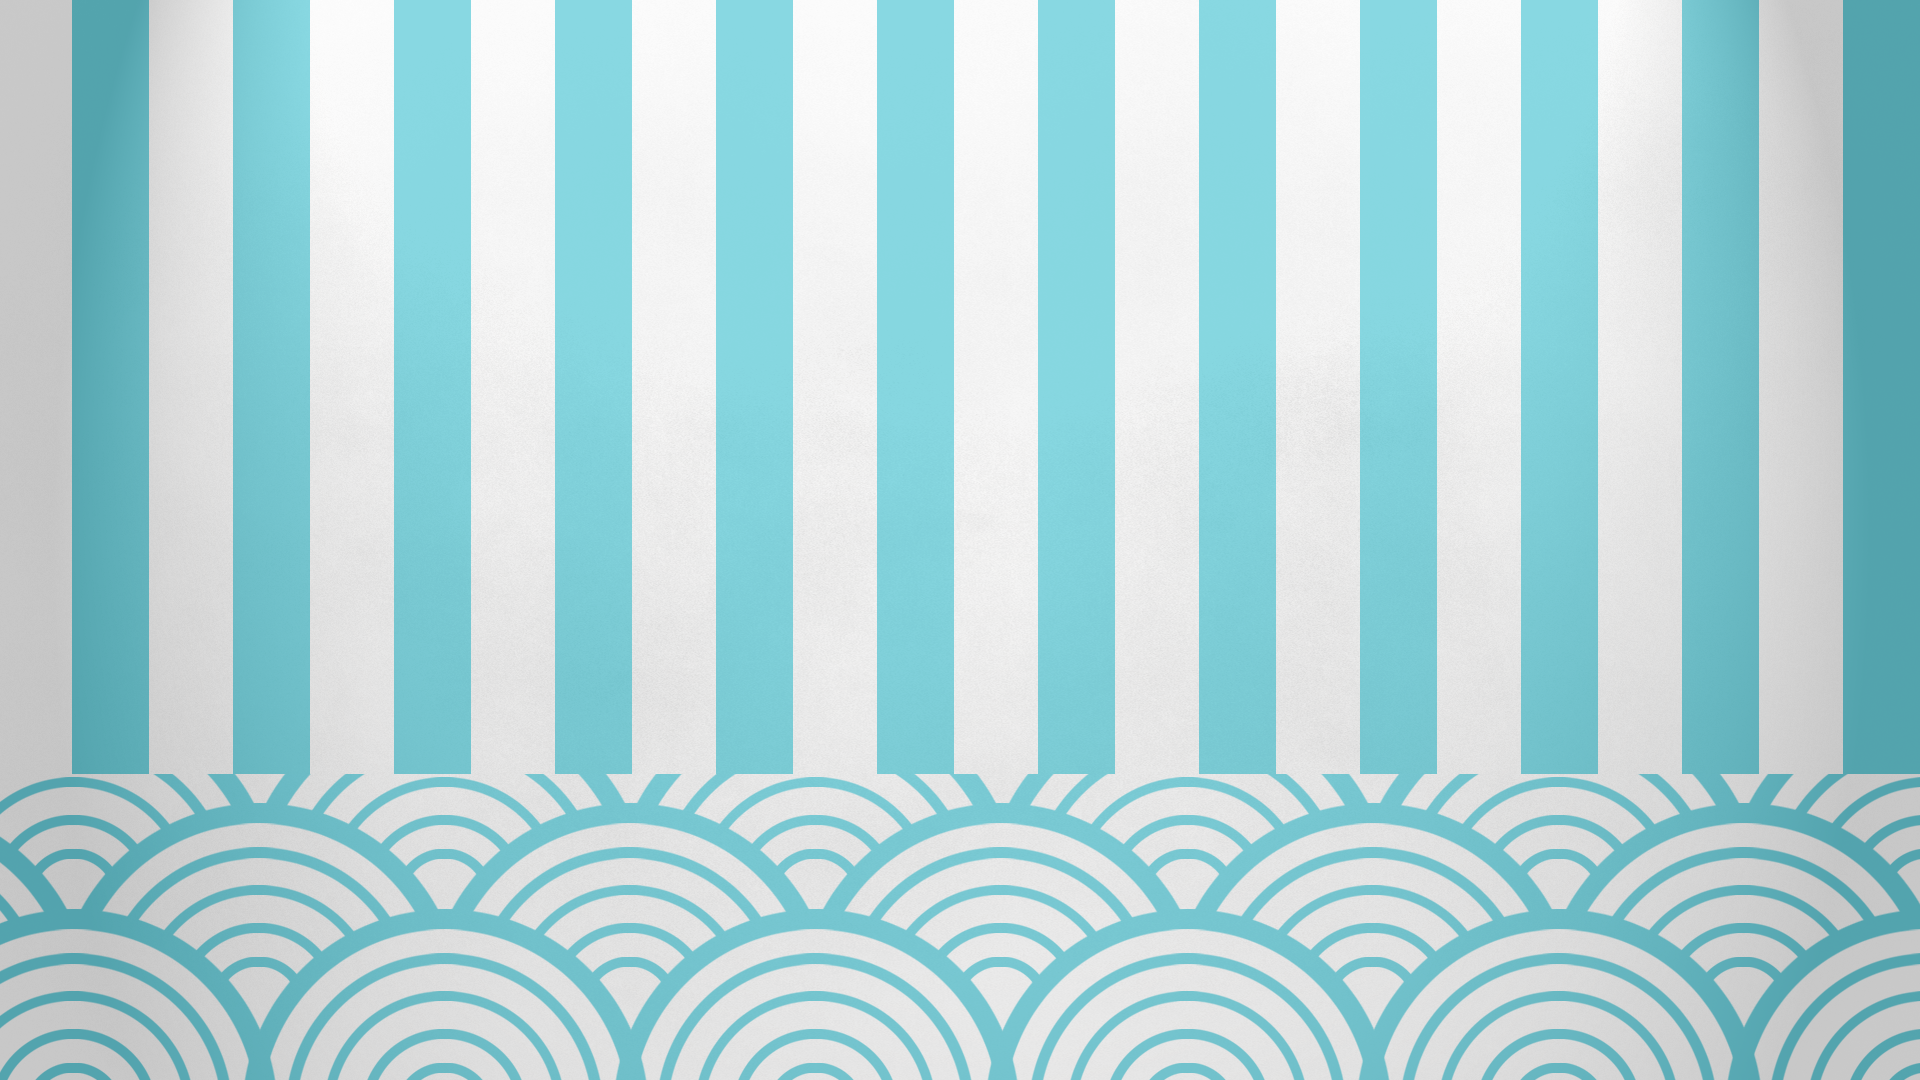 Tumblr Patterns Hd Wallpapers Hd Wallpapers Fit Stripes In 2019